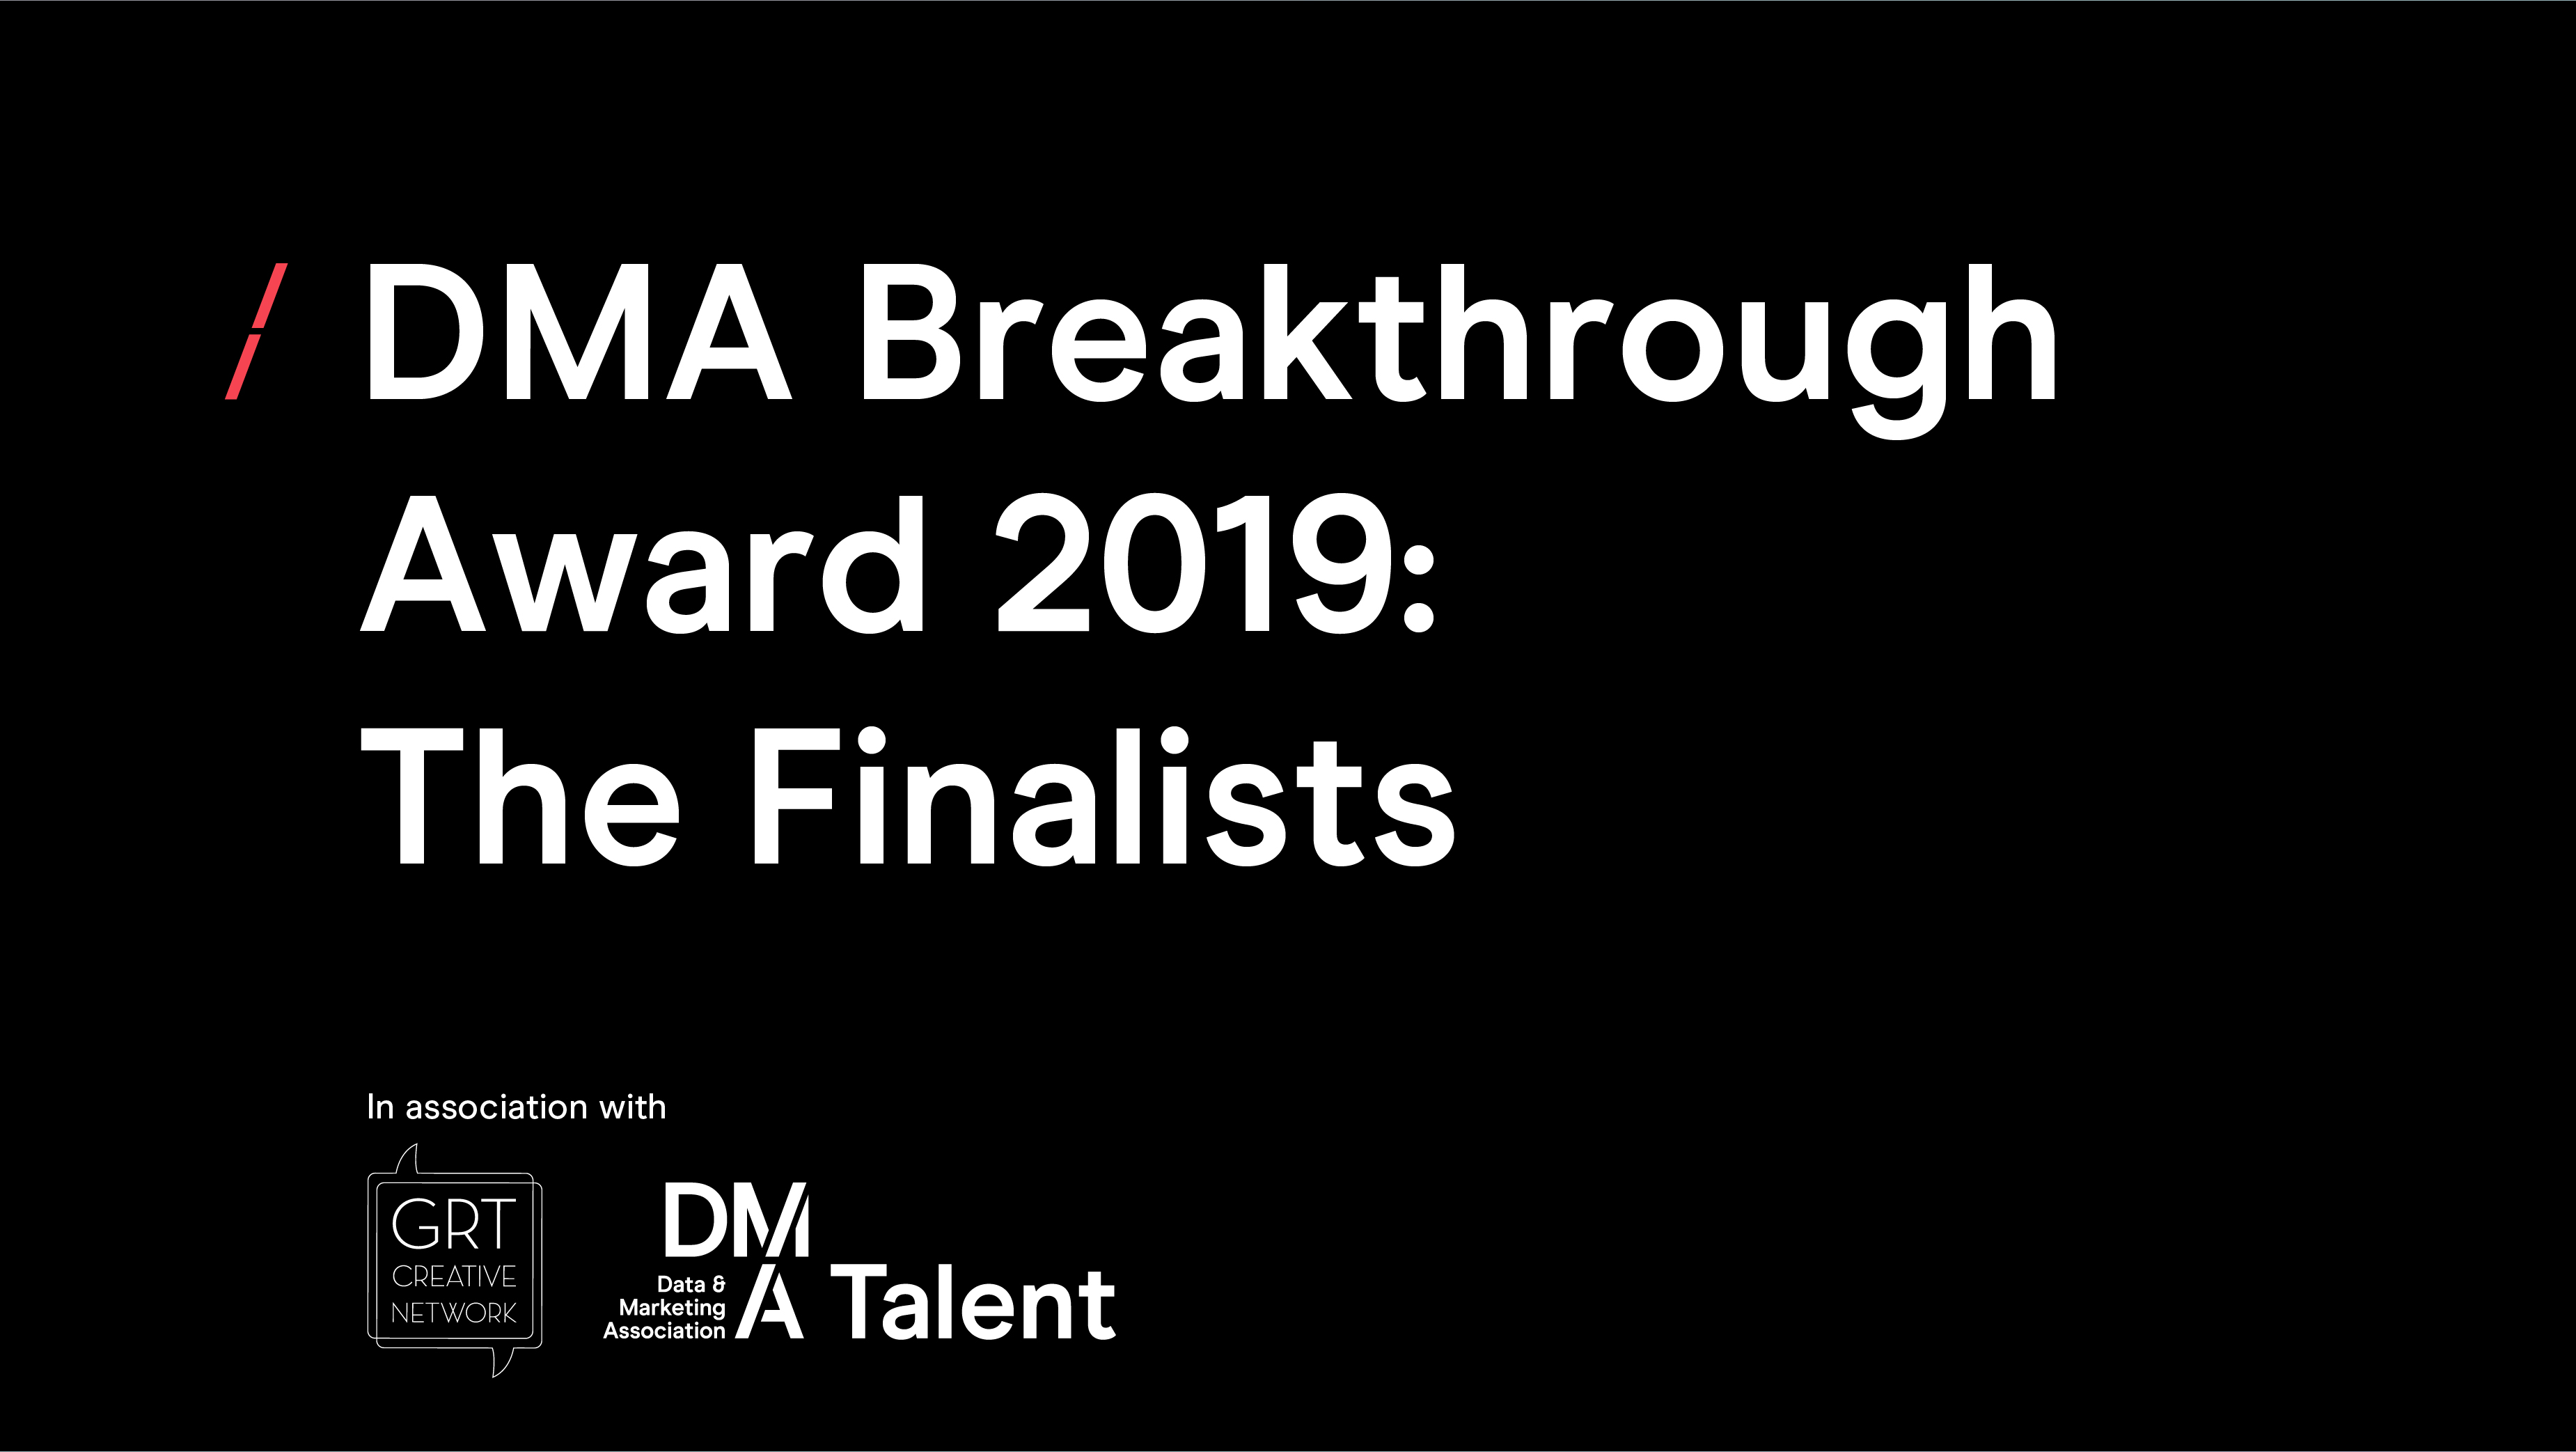 DMA Breakthrough Award Finalists 2019_General articles_General articles_General articles.jpg